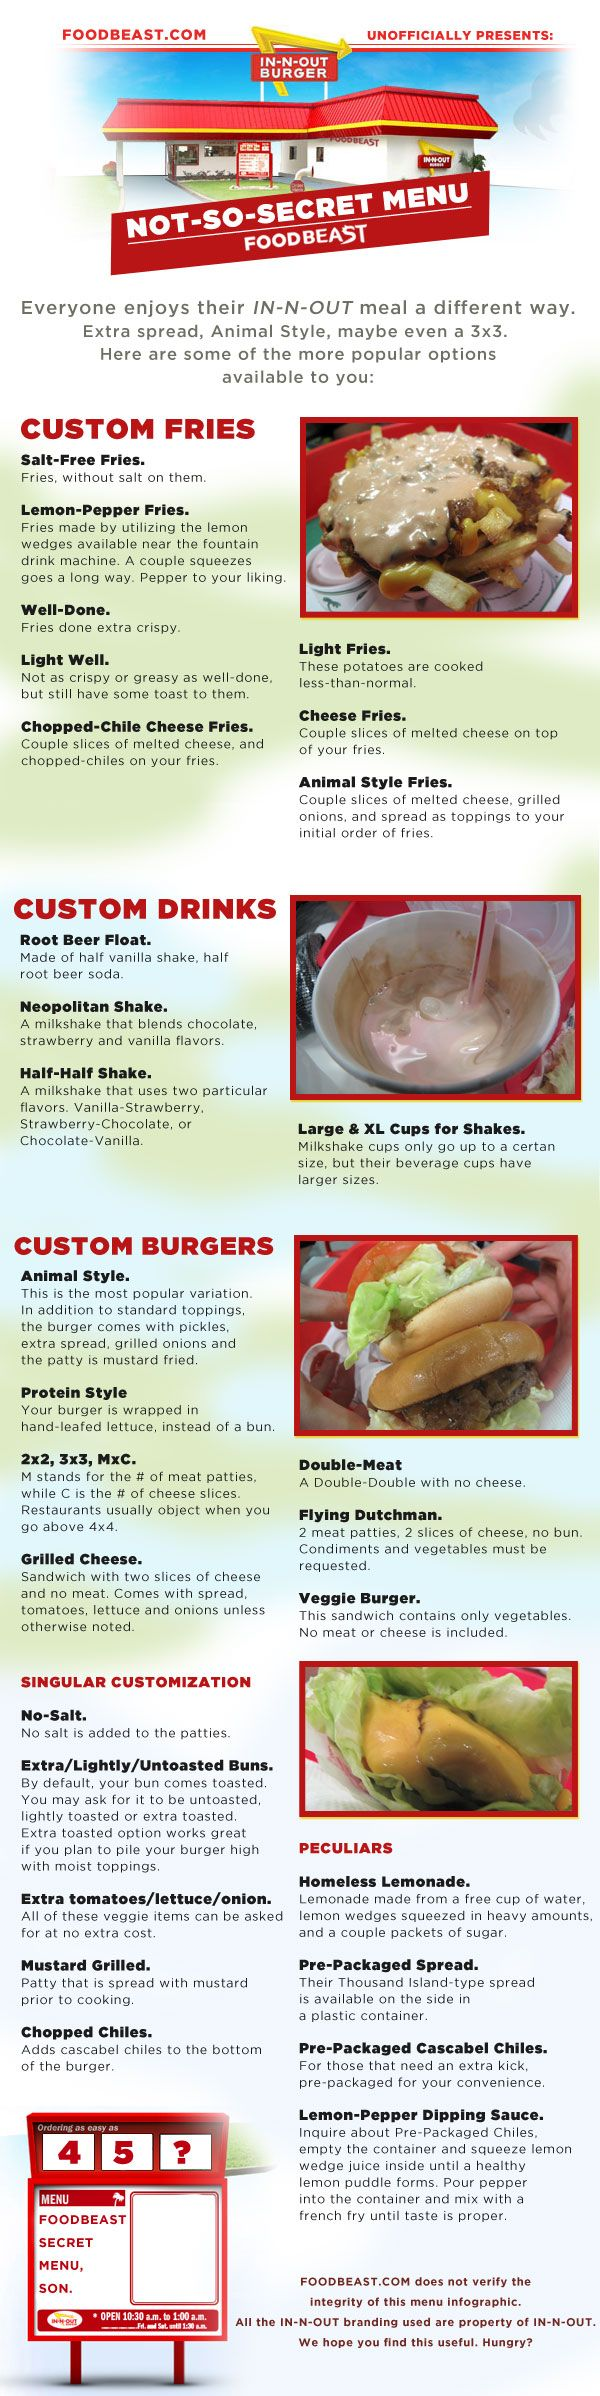 """In-N-Out Secret Menu ... Even exclamation """"Yum!"""" doesn't do these burgers justice ... I'm so going to be removed from my home by a forklift ..."""